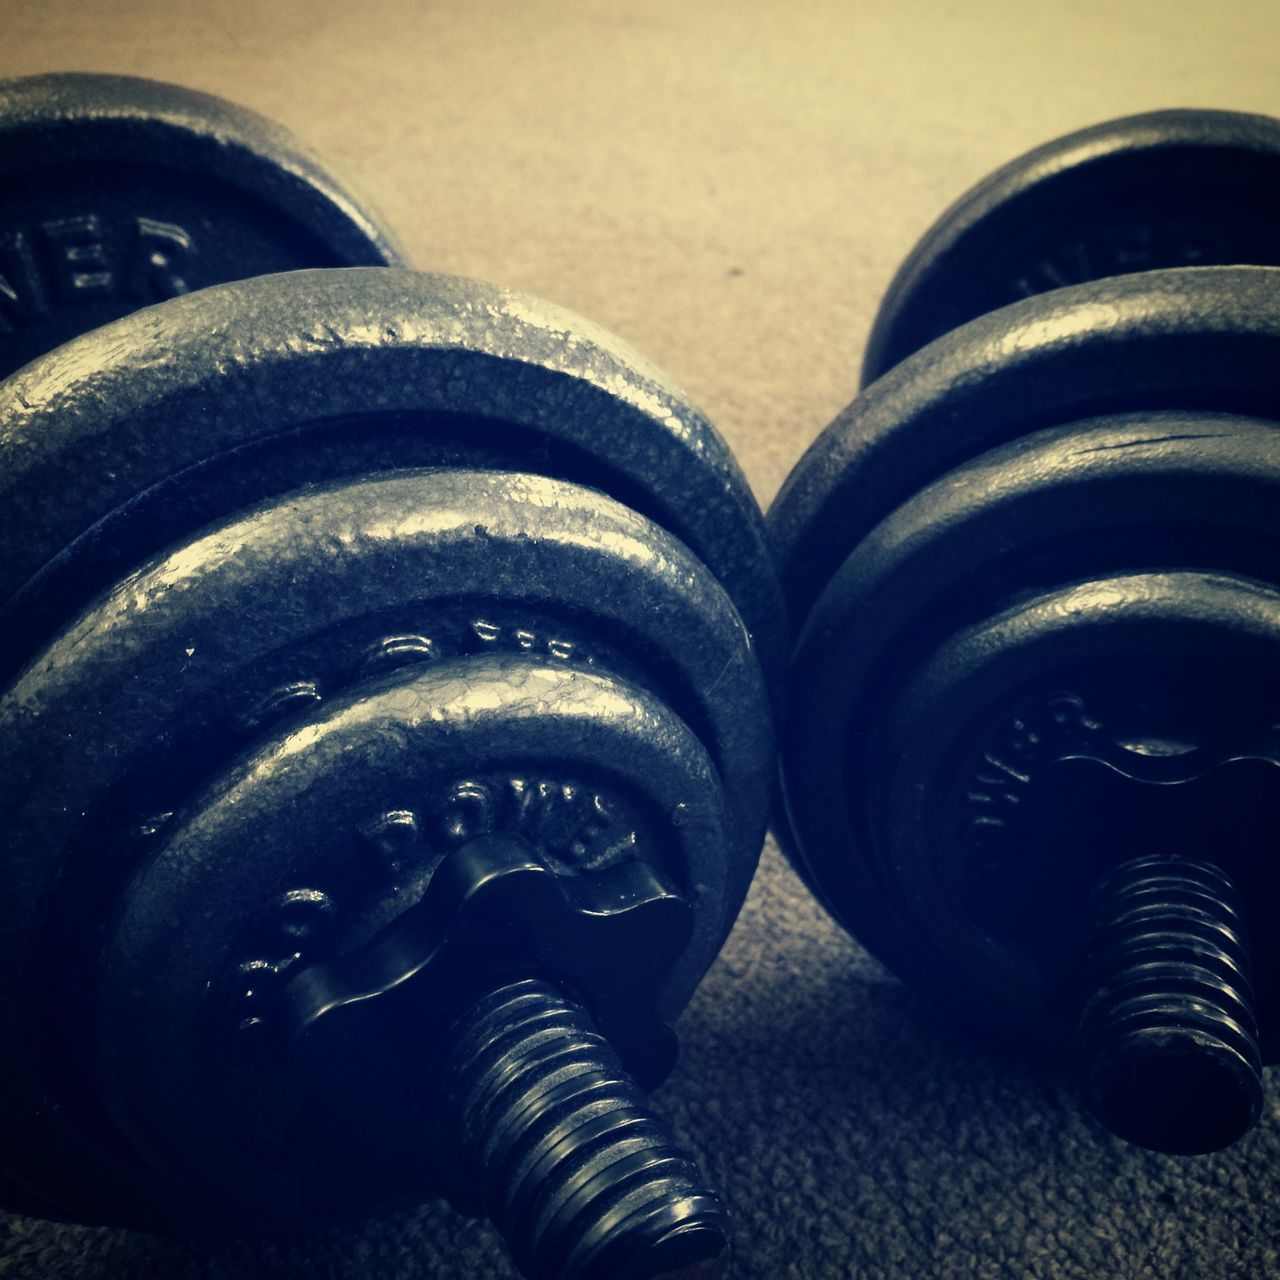 Dumbells In Gym Iron Muscles Workout Gym GymLife Indoors  Lifestyles Fitnessmotivation Weights Weightlifting Dumbells Bodybulding Biceps Pumping Iron Bodybuilding Nutrition